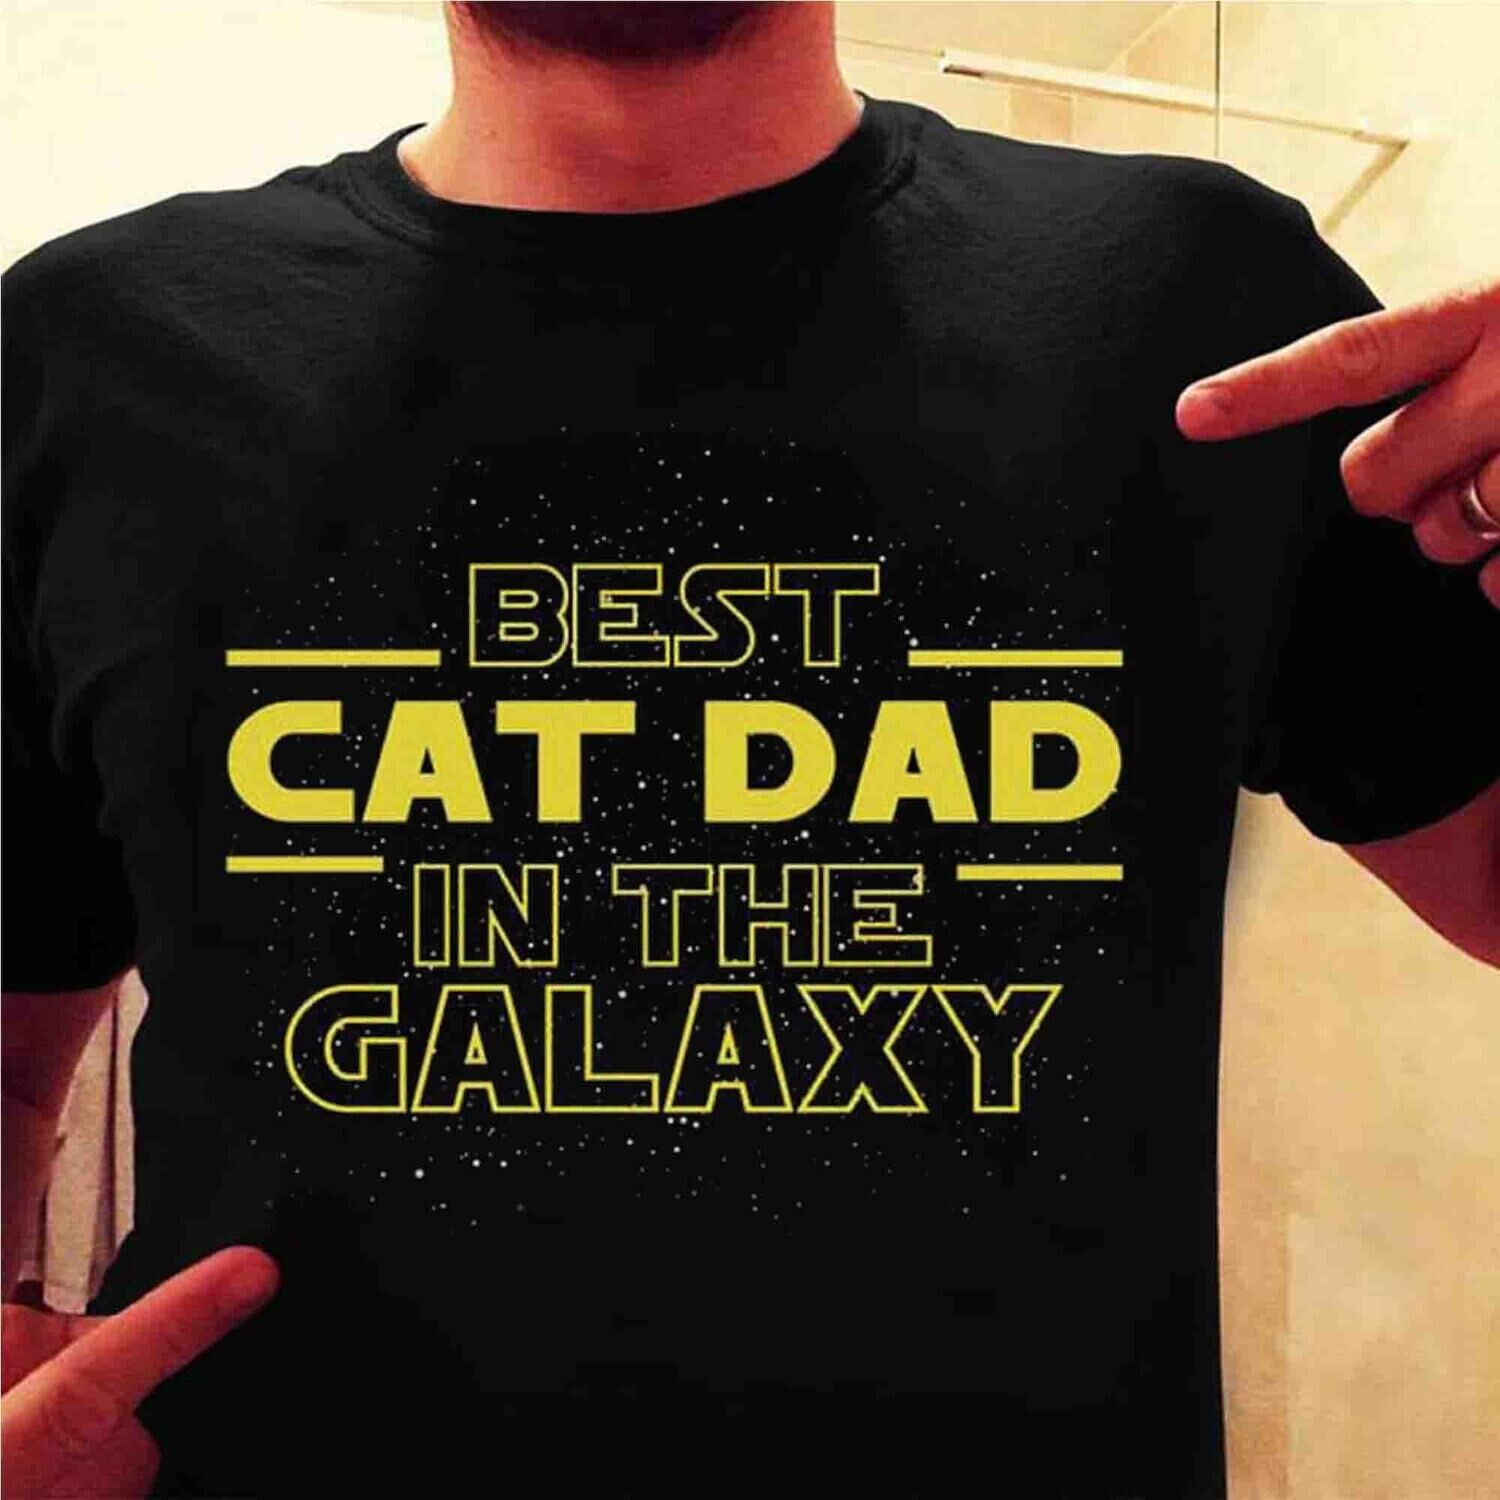 Best Cat Dad In The Galaxy Star Wars, Father's Day gift ,Gift for dad, Shirt For Dad, Fathersday Gift idea, Daddy shirt Trending Hoodies Sweatshirt Long Sleeve V Neck Tank Top Kid Tee T Shirt